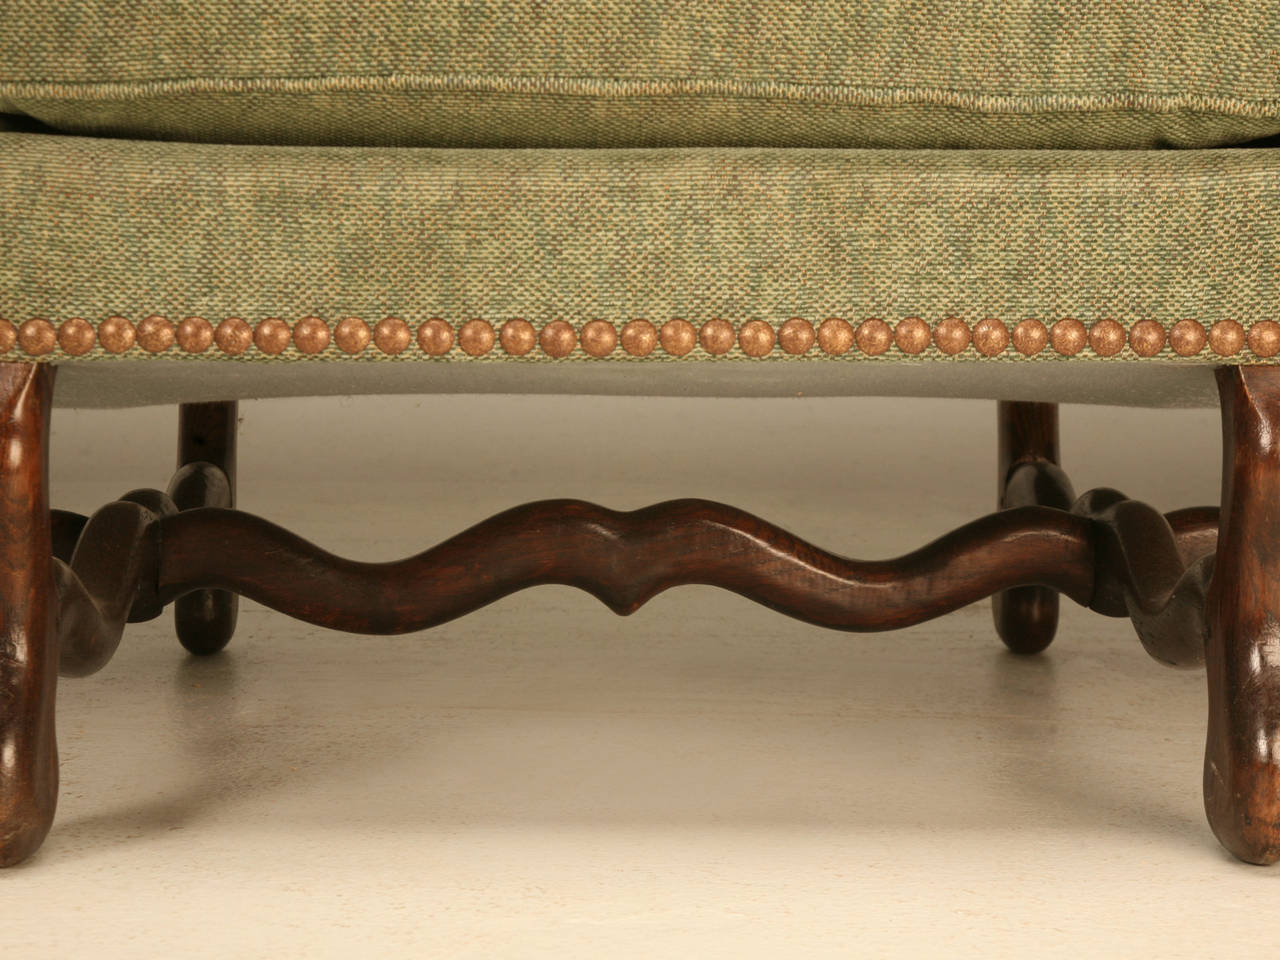 Vintage French Os De Mouton Style Small Sofa or Settee 6